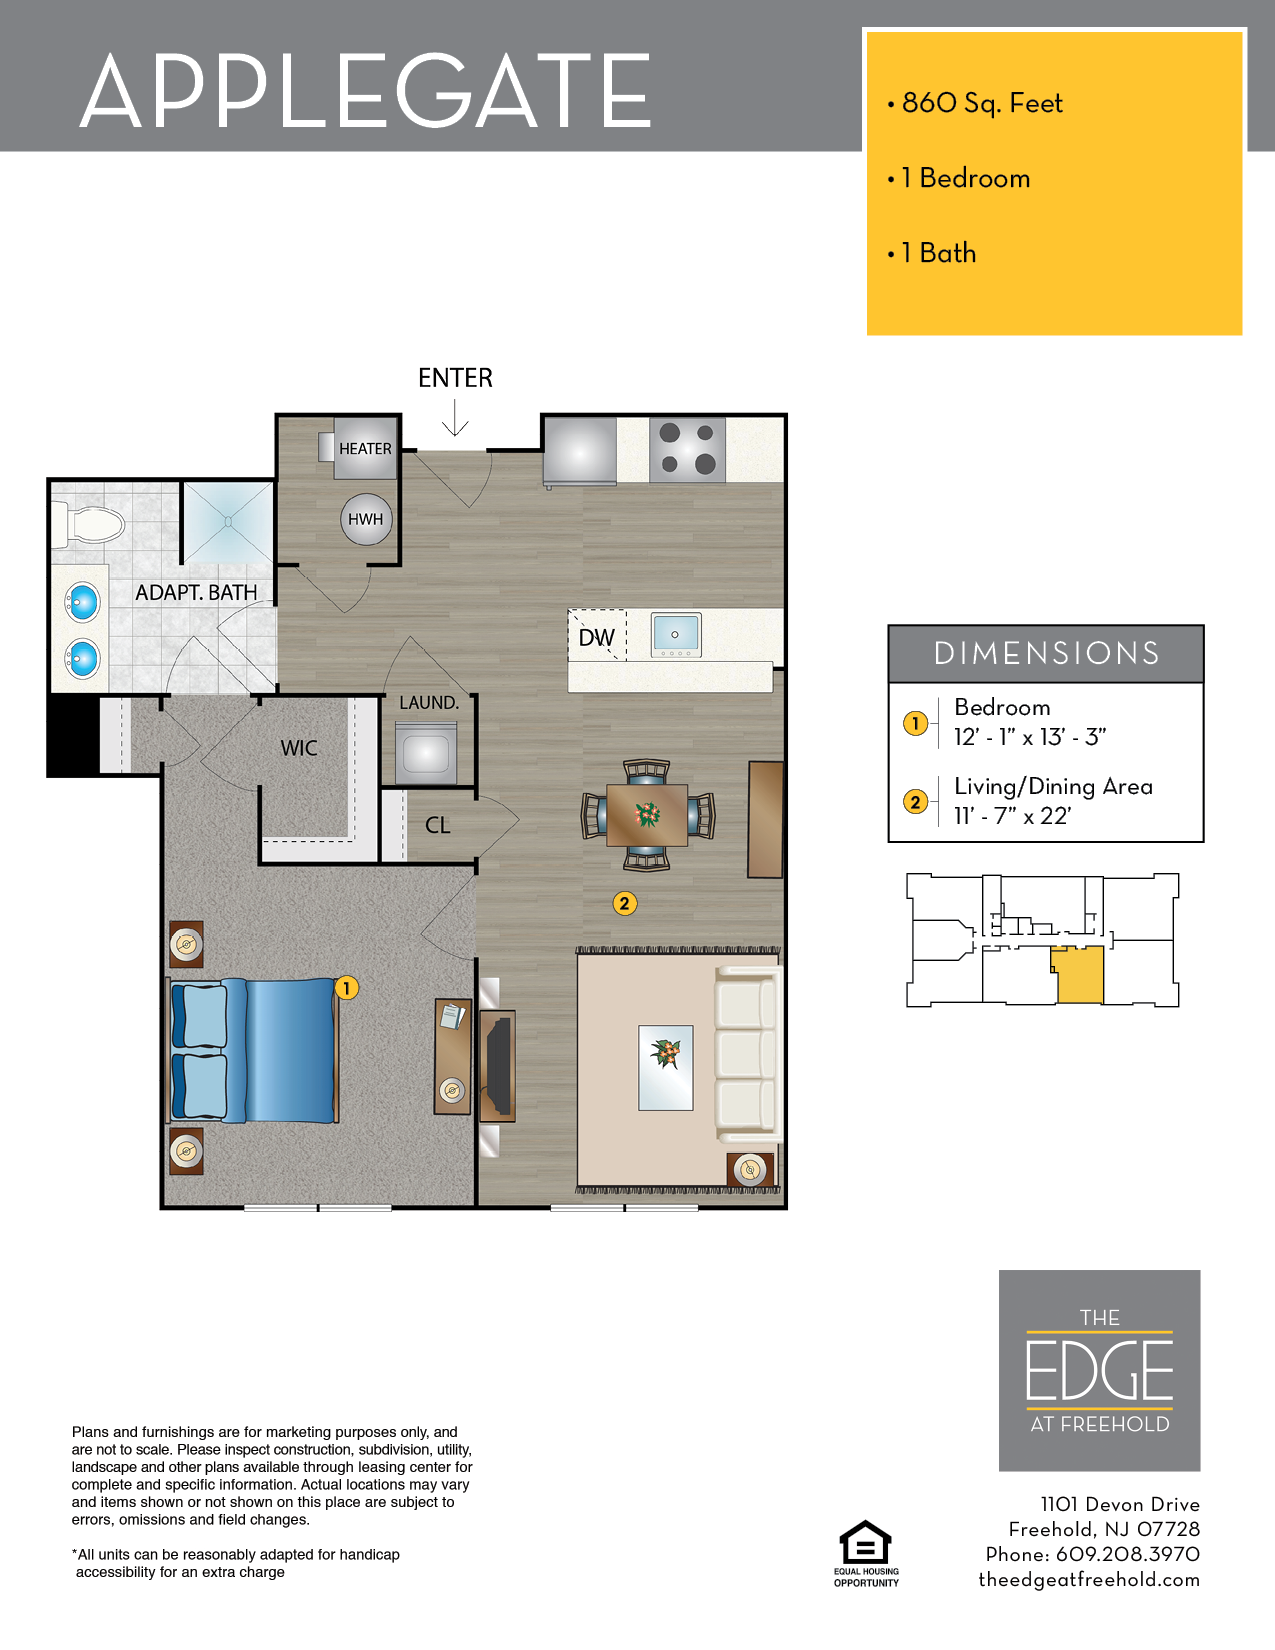 Applegate Floor Plan